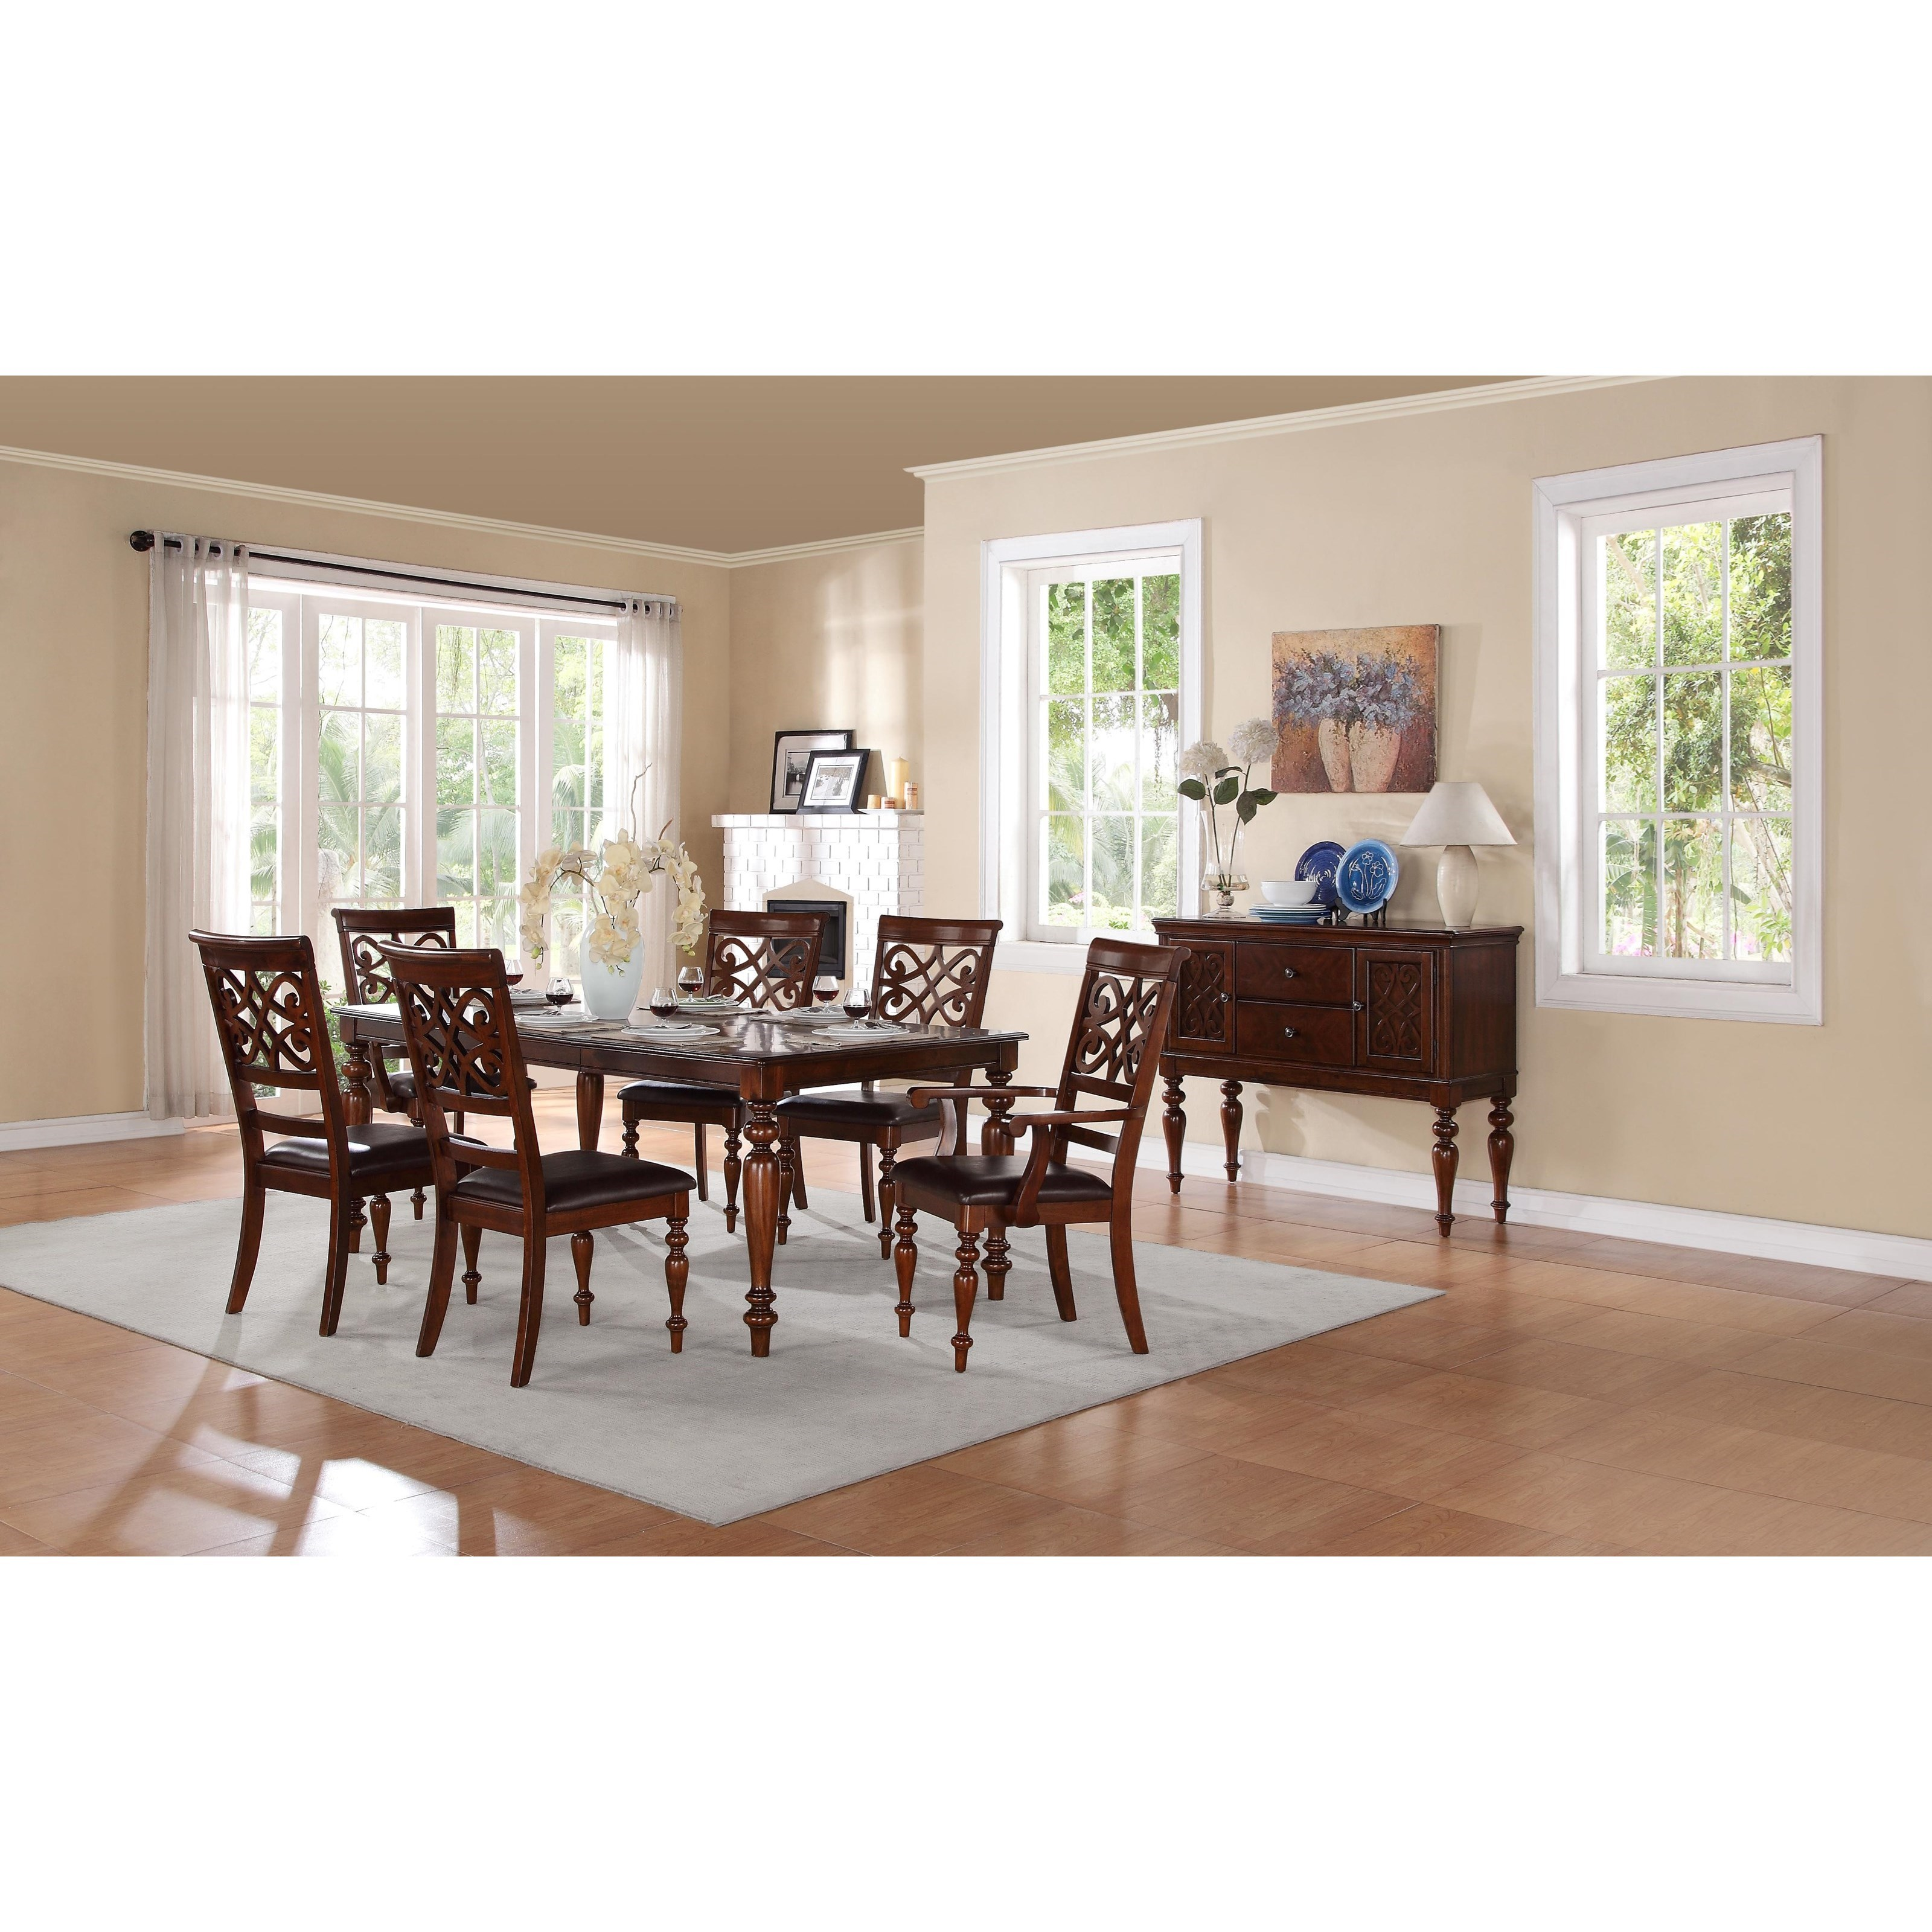 Formal Dining Furniture: Homelegance Creswell 5056-78 Traditional Formal Dining